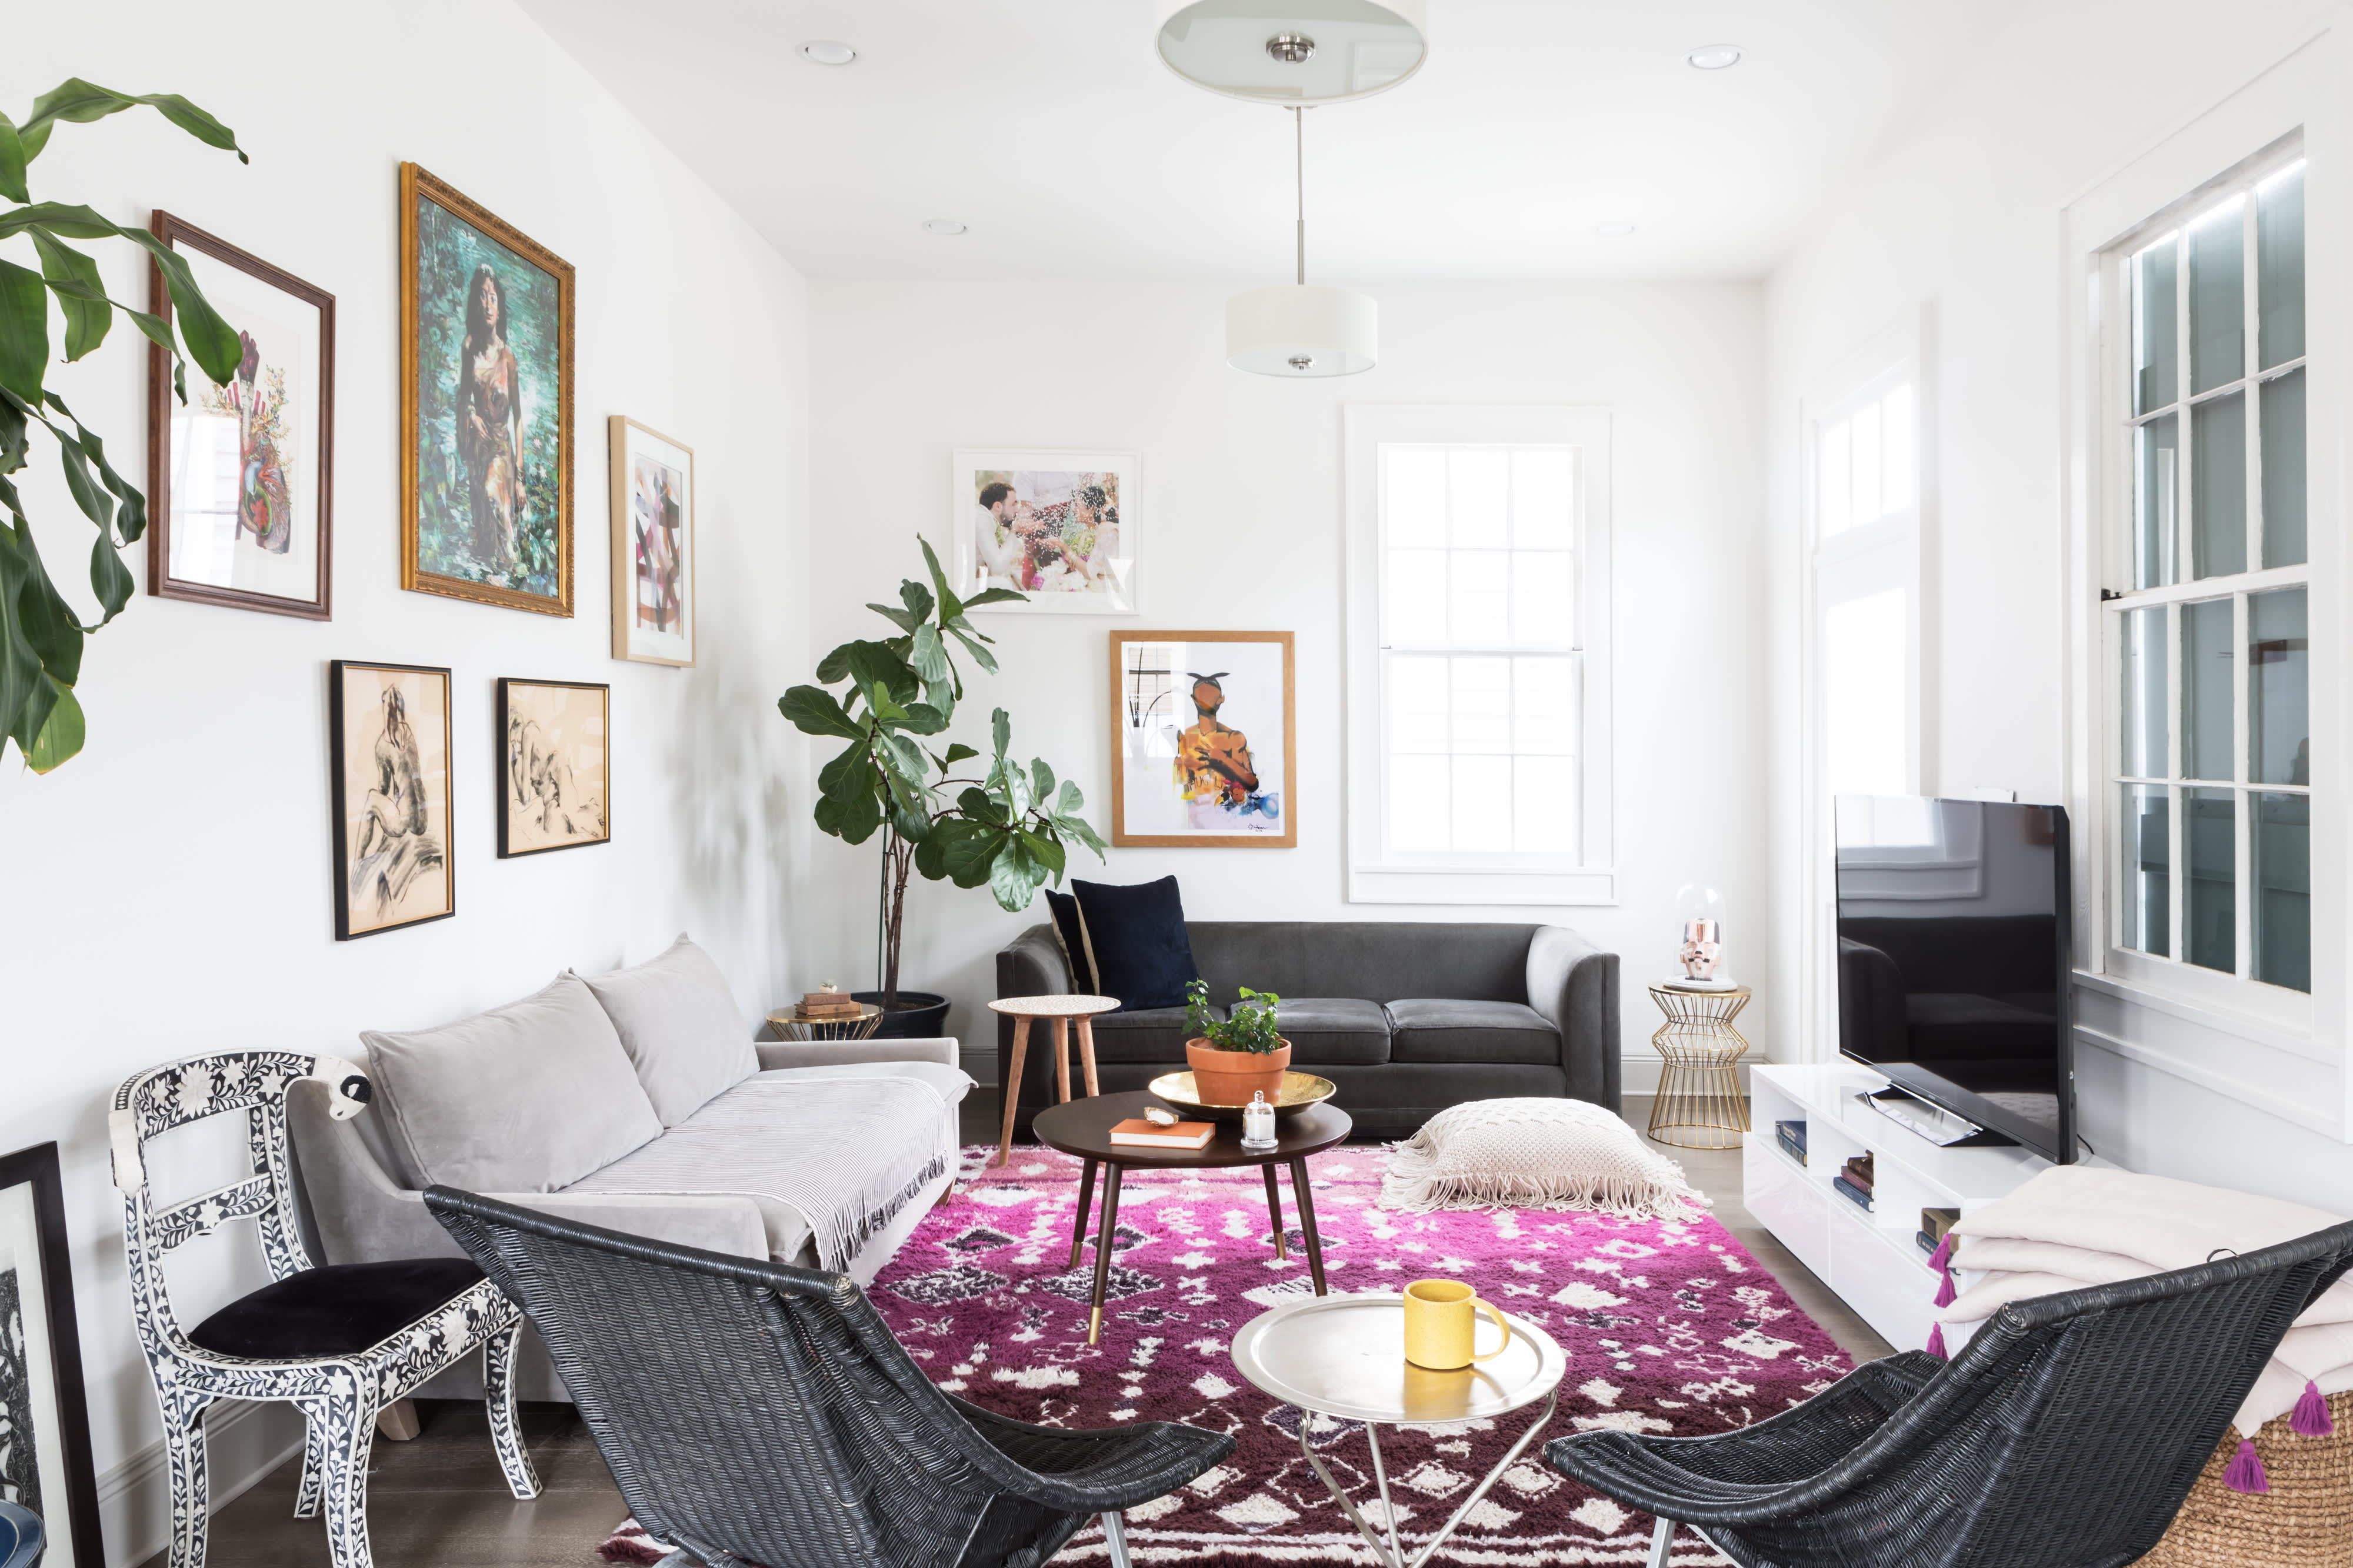 West Elm December Sale Furniture Rug Deals Apartment Therapy